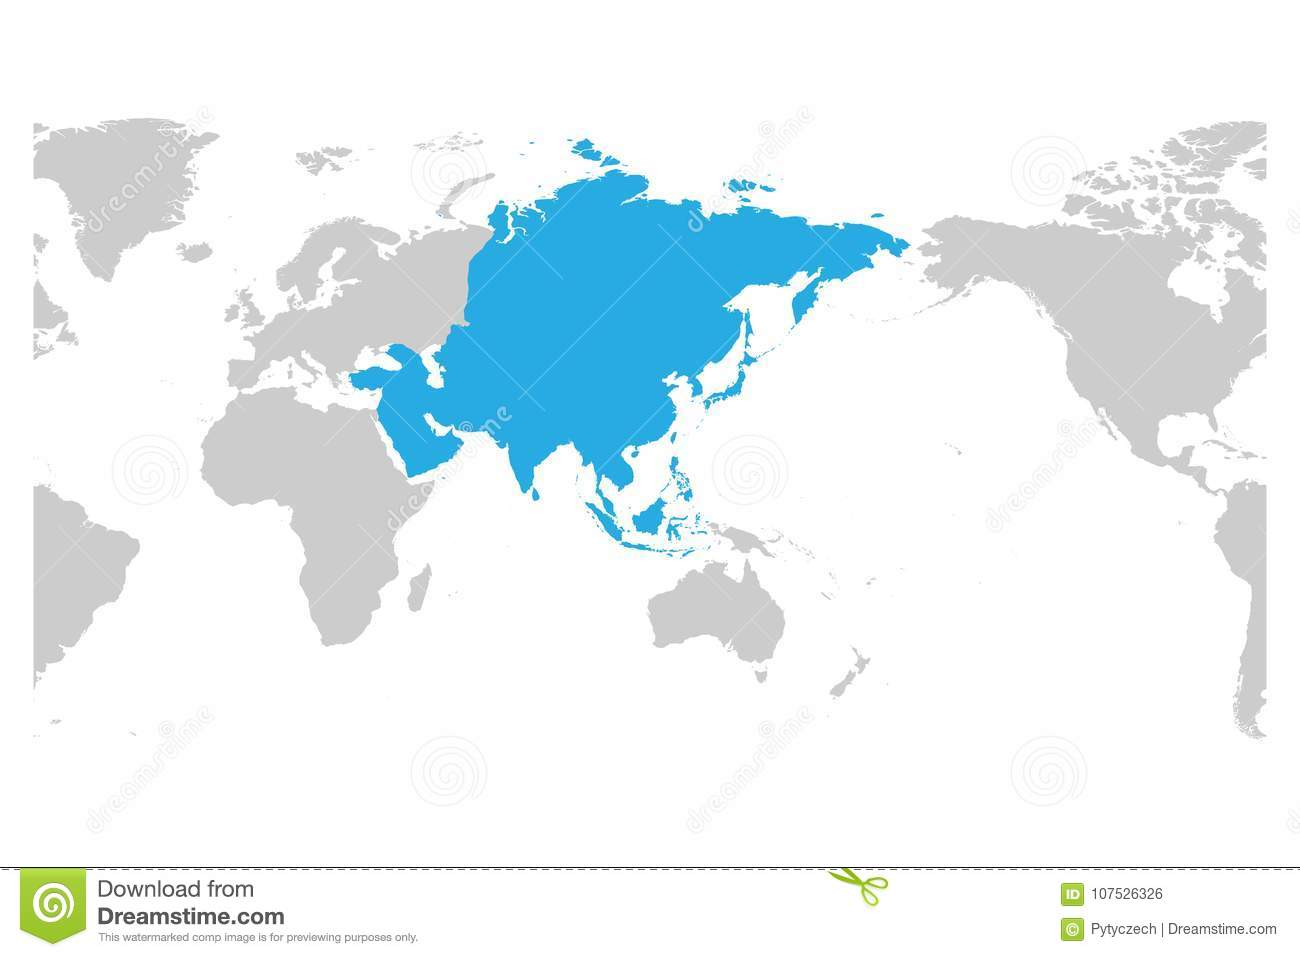 The Continent Of Asia Map.Asia Continent Blue Marked In Grey Silhouette Of World Map Centered